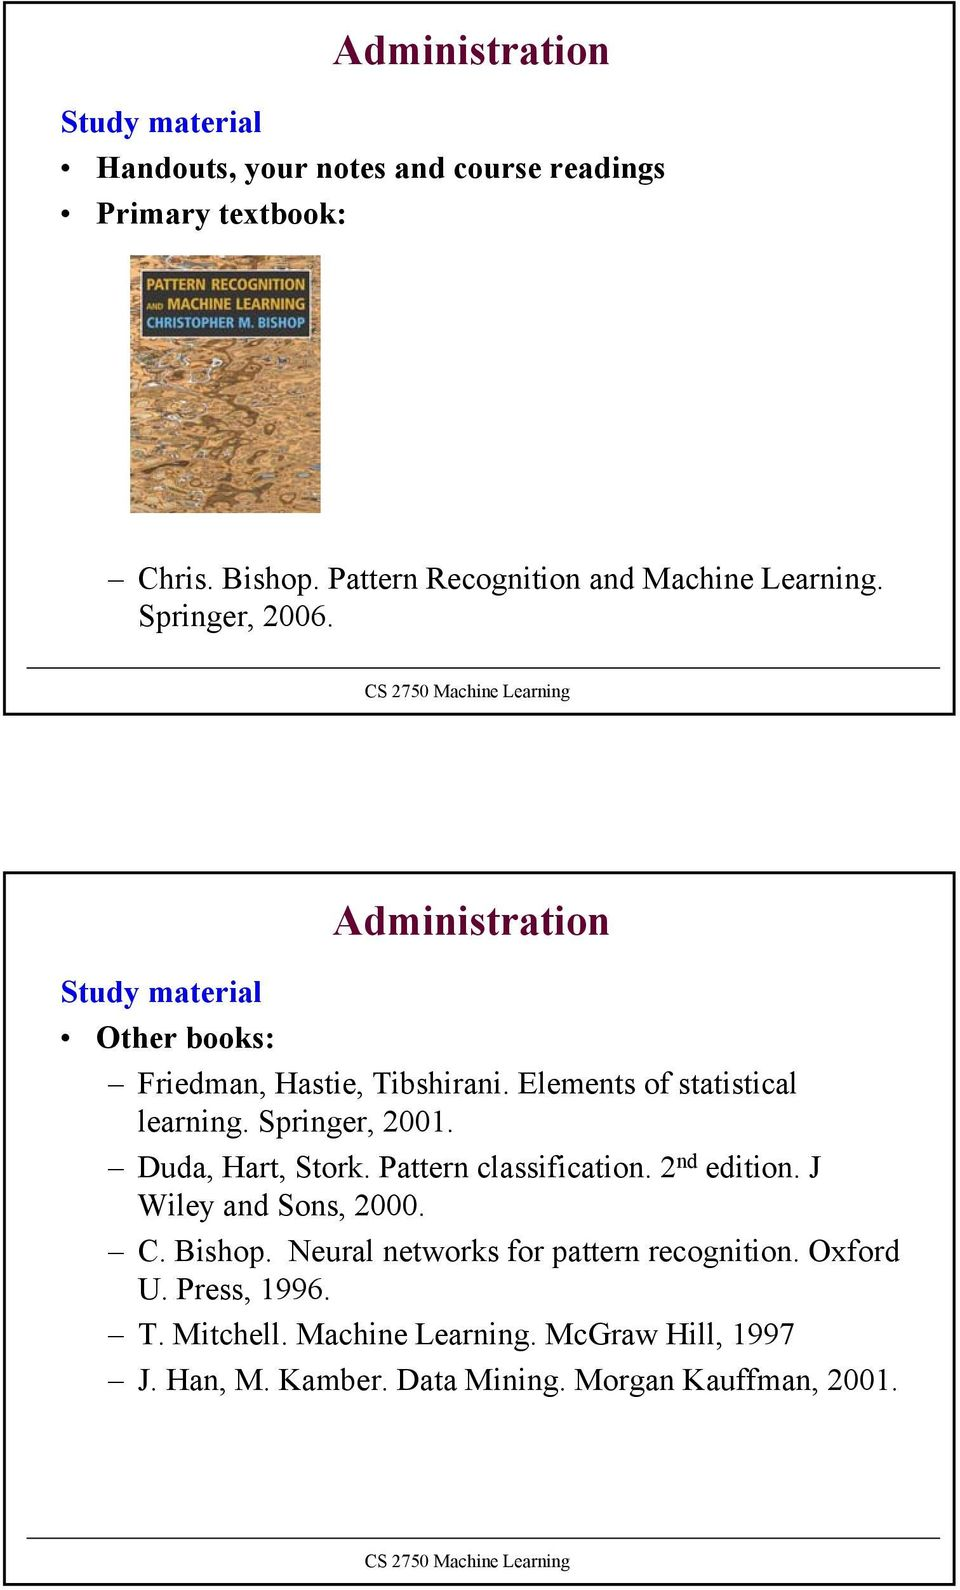 Elements of statistical learning. Springer,. Duda, Hart, Stork. Pattern classification. nd edition. J Wiley and Sons,. C. Bishop.